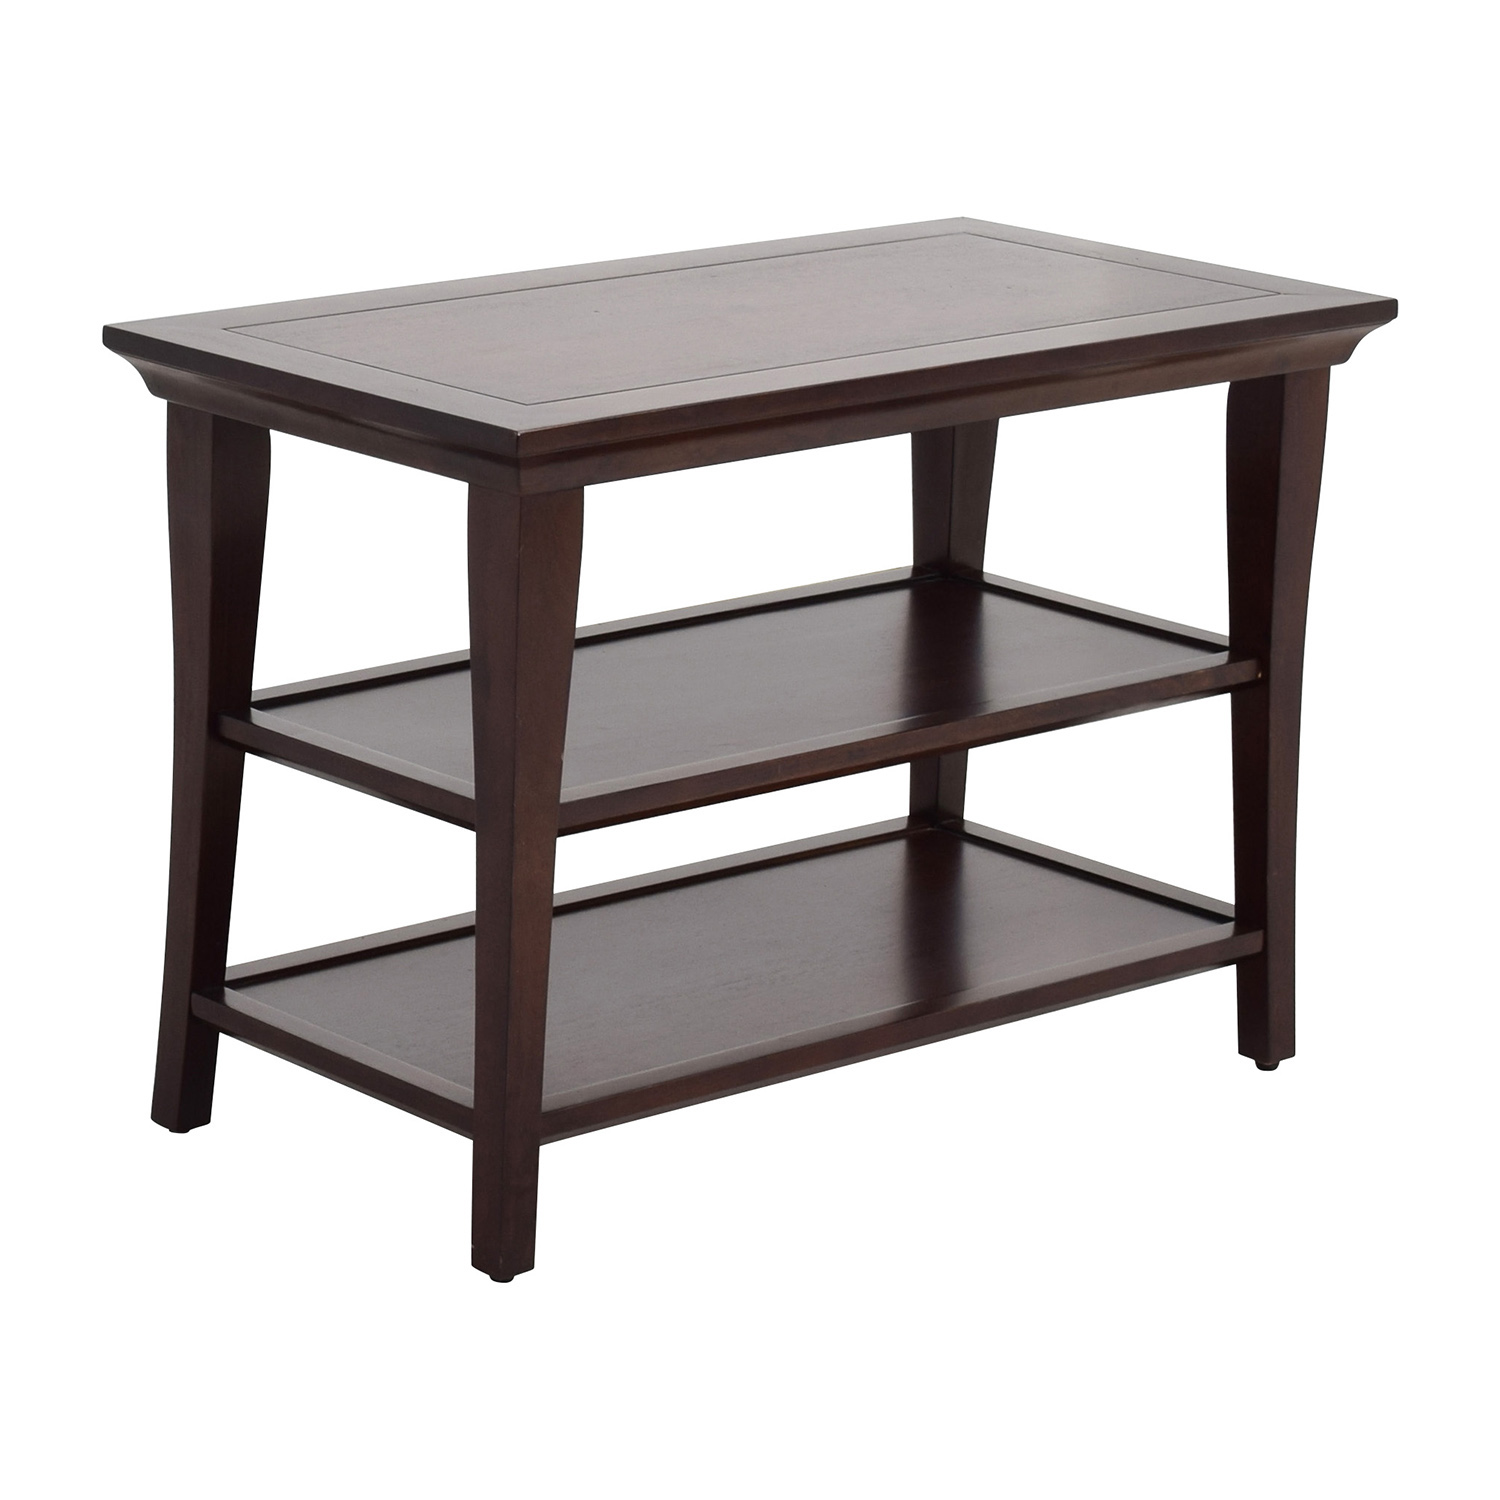 off pottery barn wood table with shelves tables second hand accent west elm antler lamp target white furniture tiffany inspired lamps large silver wall clock marble nesting metal